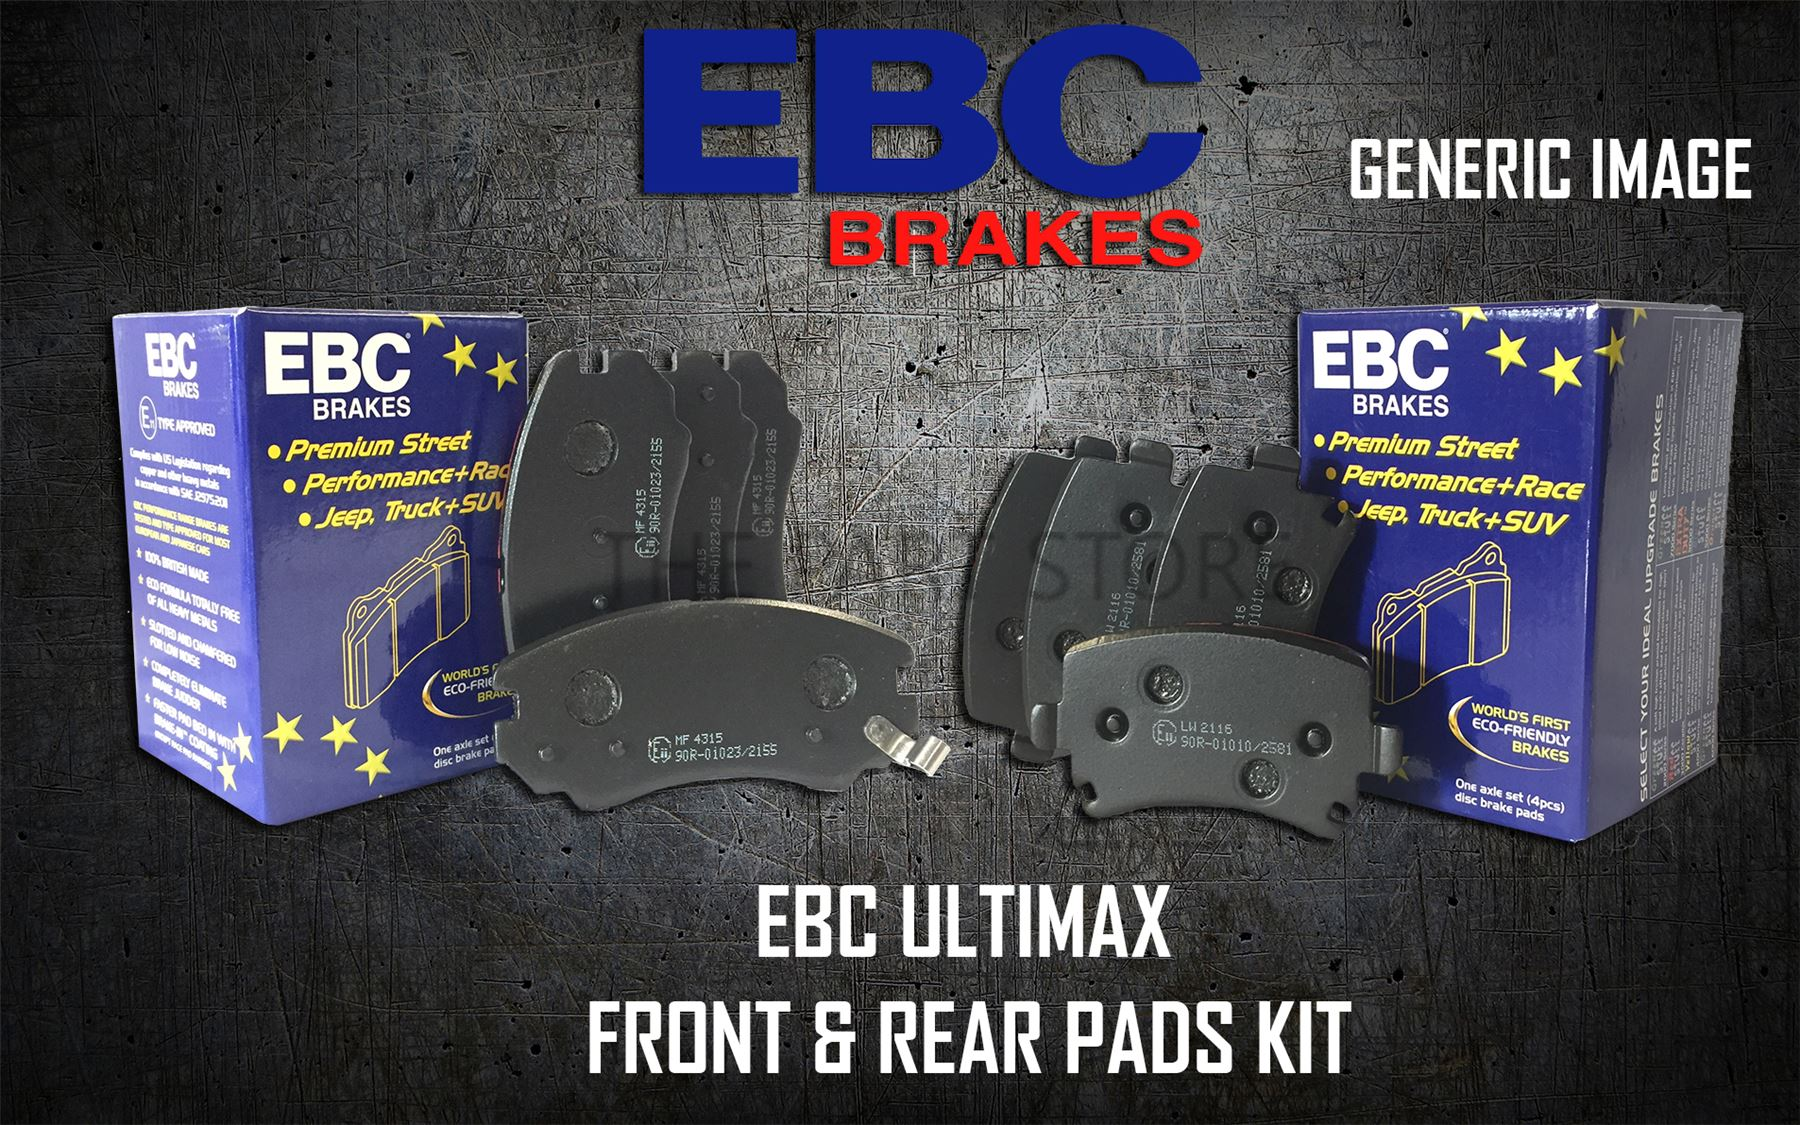 PDKF850 EBC Front Brake Kit Ultimax Pads /& Standard Discs